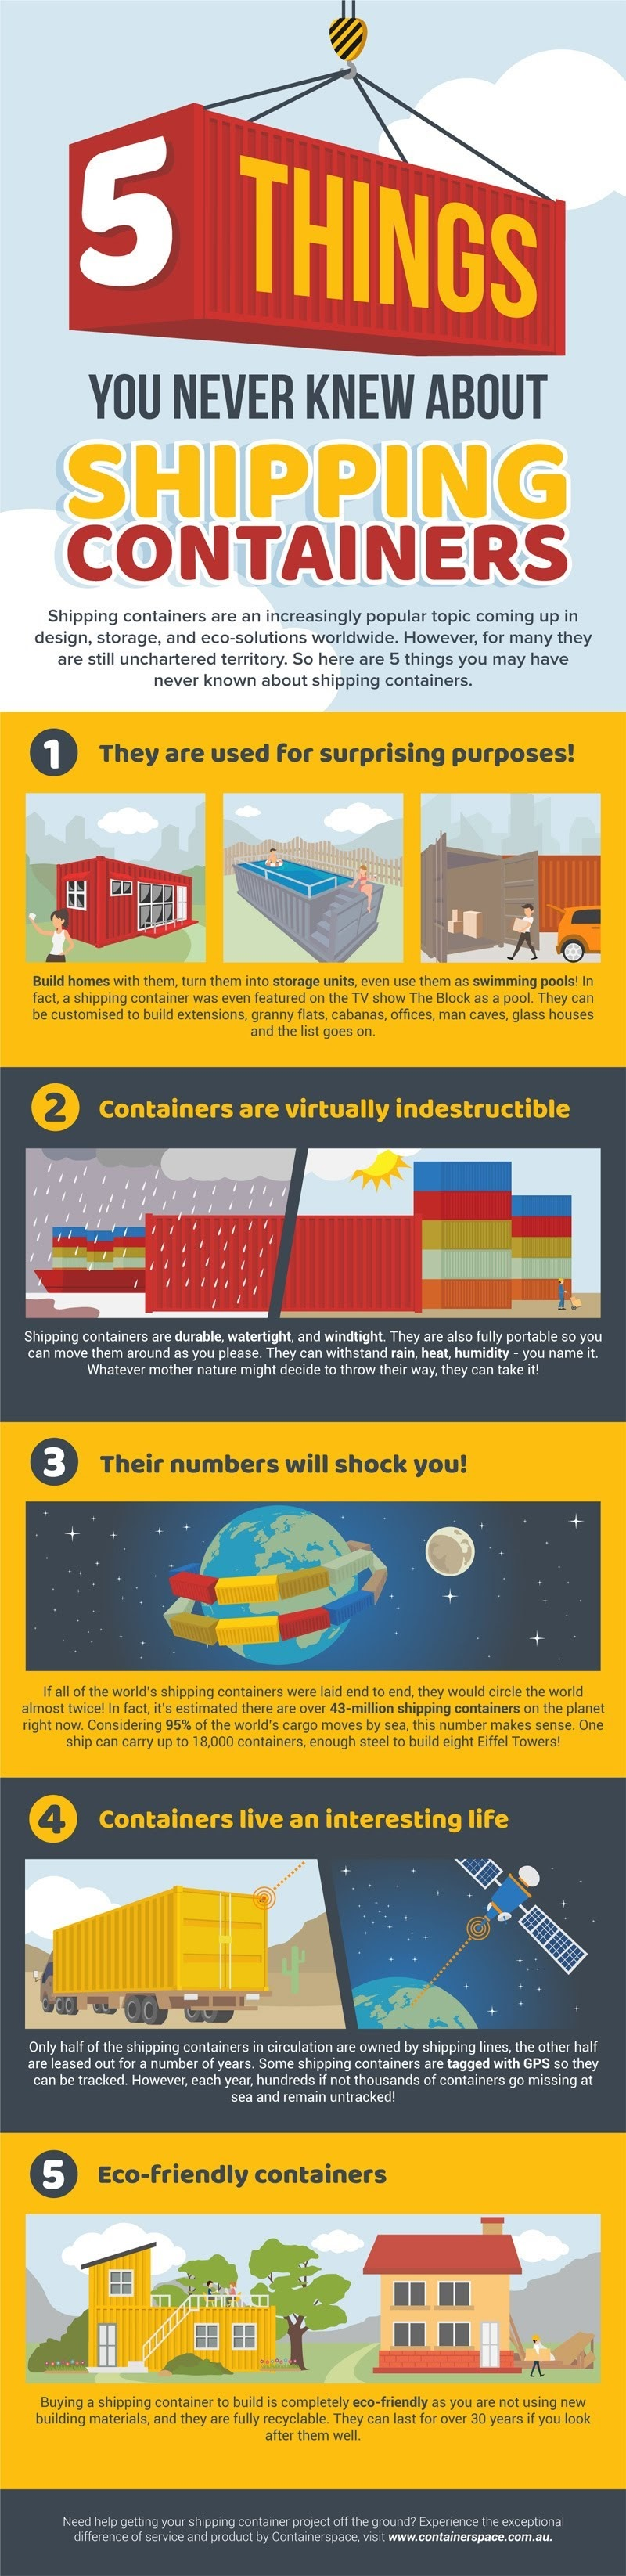 5 Things You Never Knew About Shipping Containers infographic